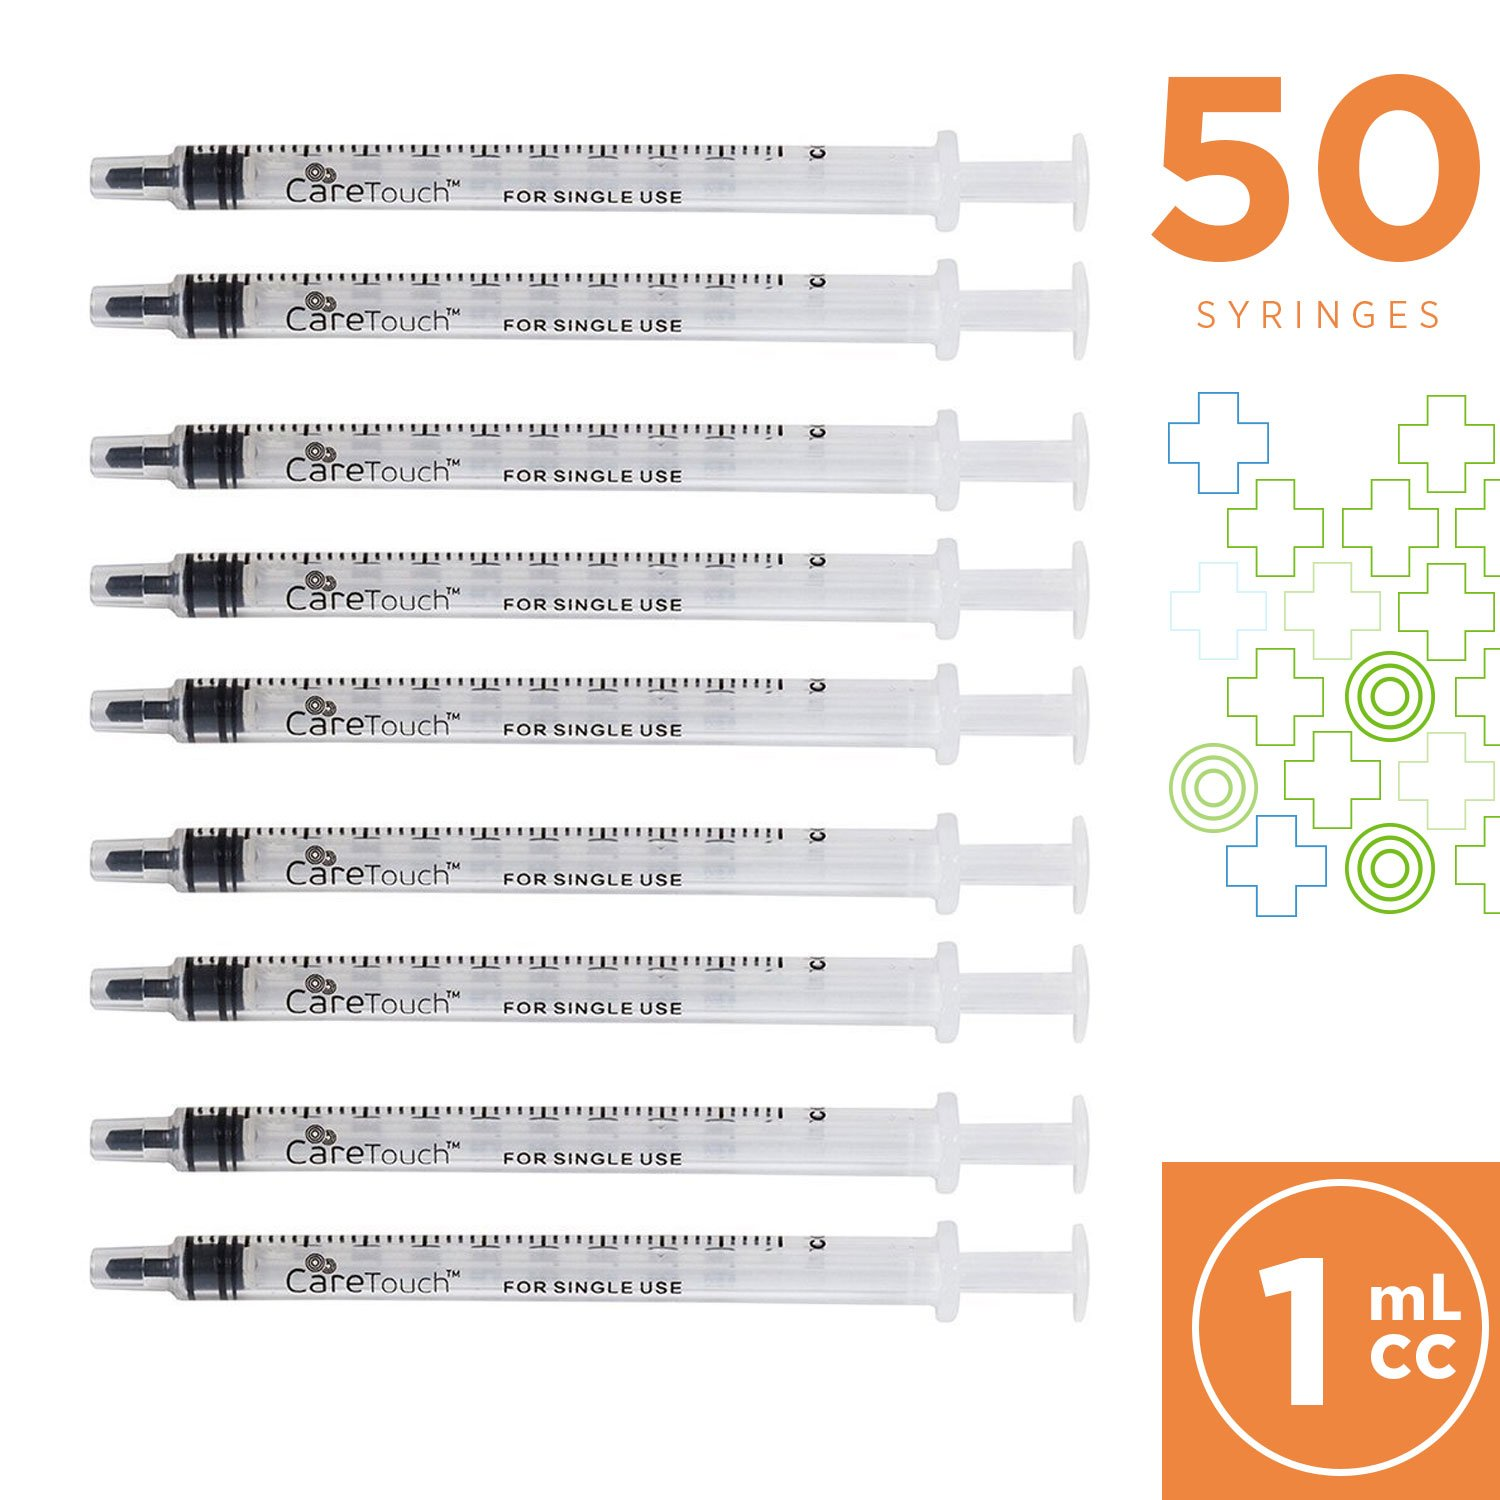 1ml Syringe with Luer Slip Tip - 50 Sterile Syringes by Care Touch - No Needle, Great for Dispensing Oral Medicine and Home Care by Care Touch